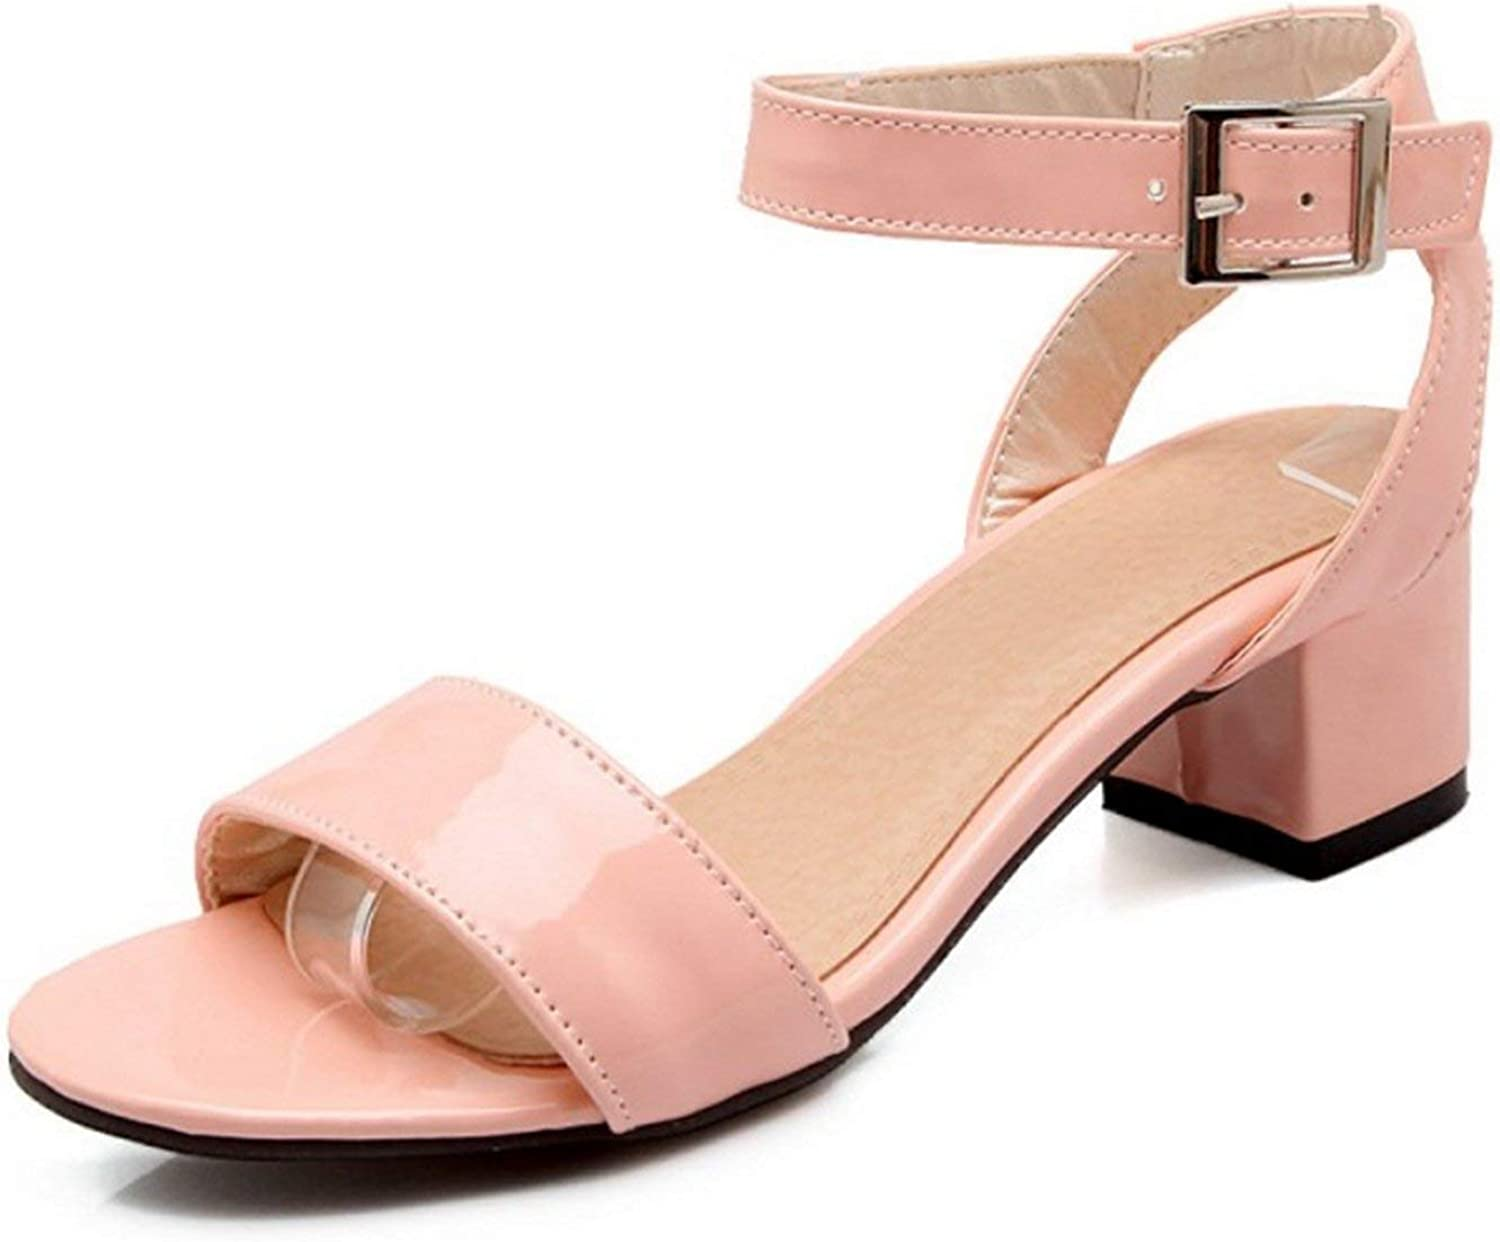 ALWAYS ME Woman Sandals with Open Toe and 4.5Cm Chunky Heels Buckle Comfort Footwear Large Size